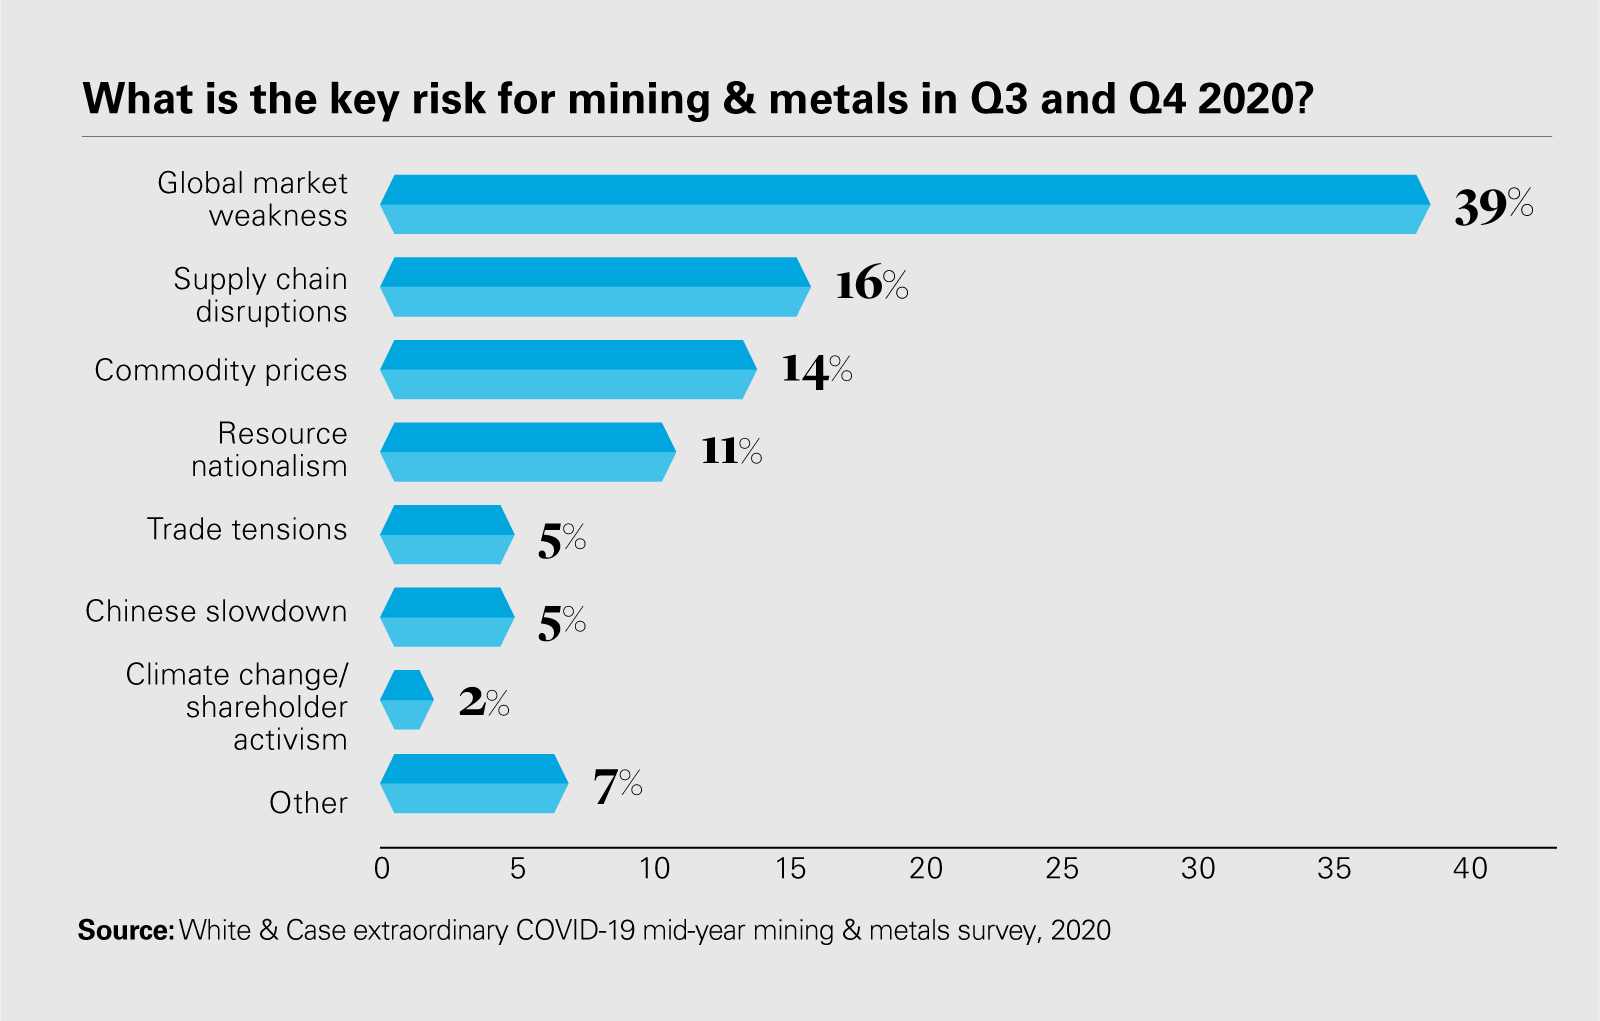 What is the key risk for mining & metals in Q3 and Q4 2020?